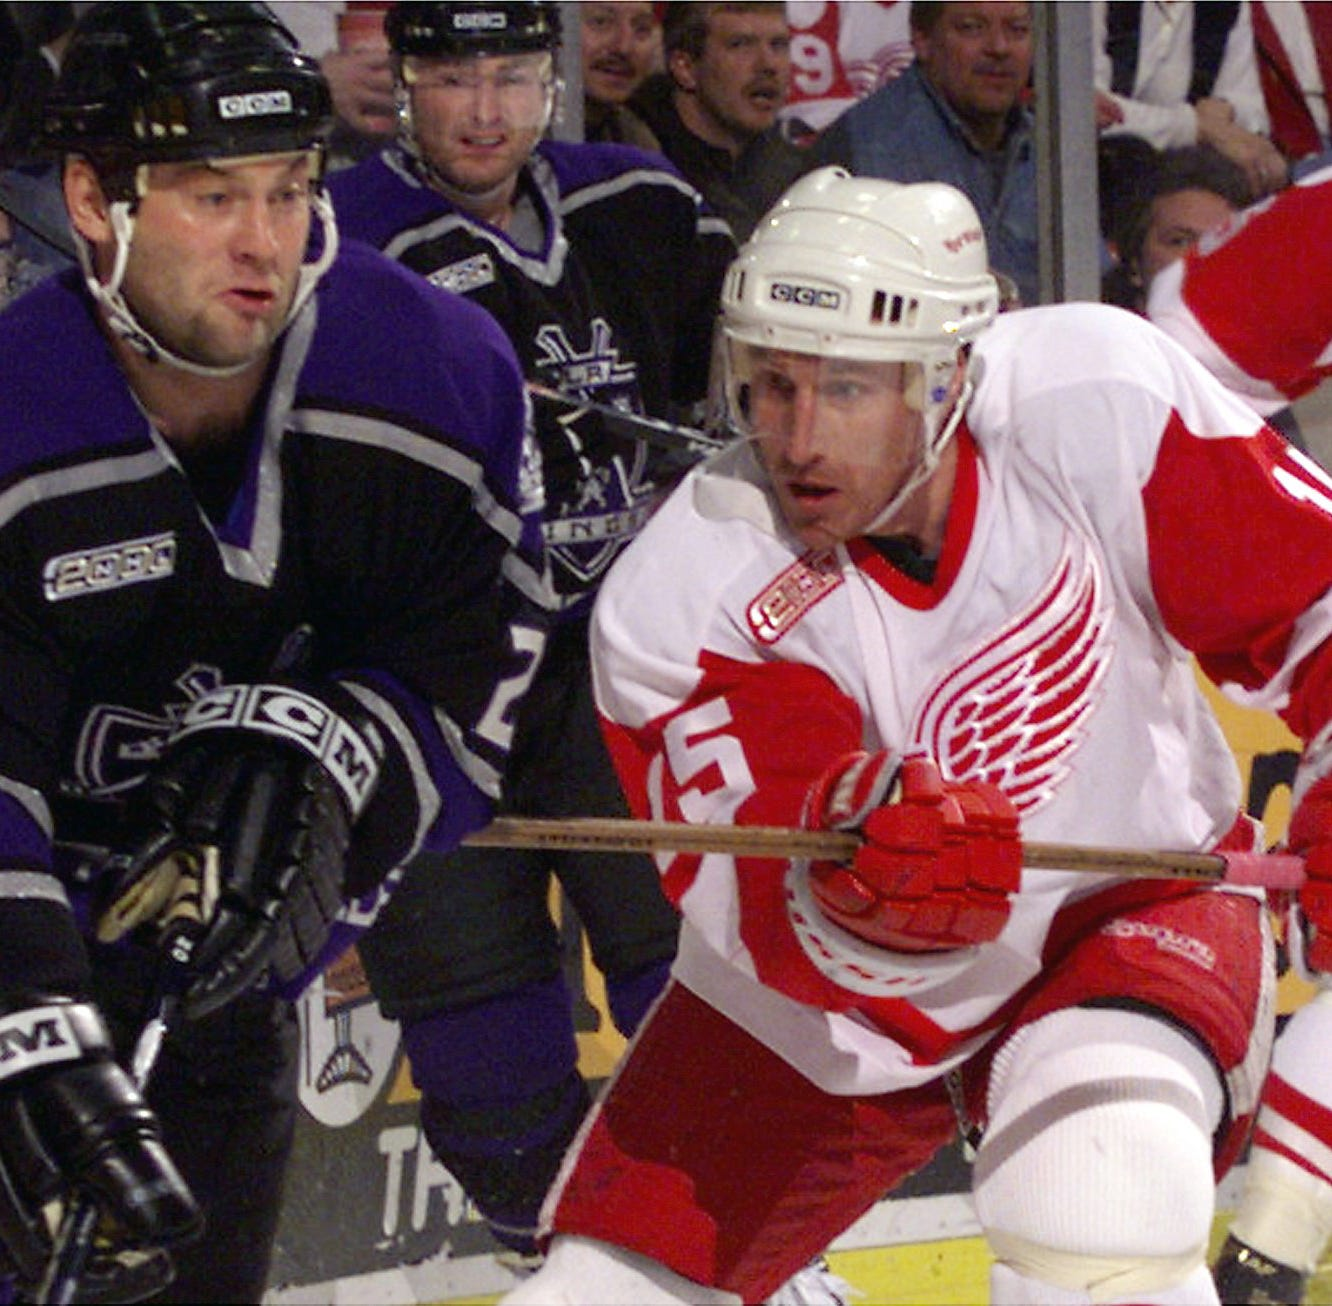 Detroit Red Wings' Steve Yzerman makes first hire: Pat Verbeek as assistant GM